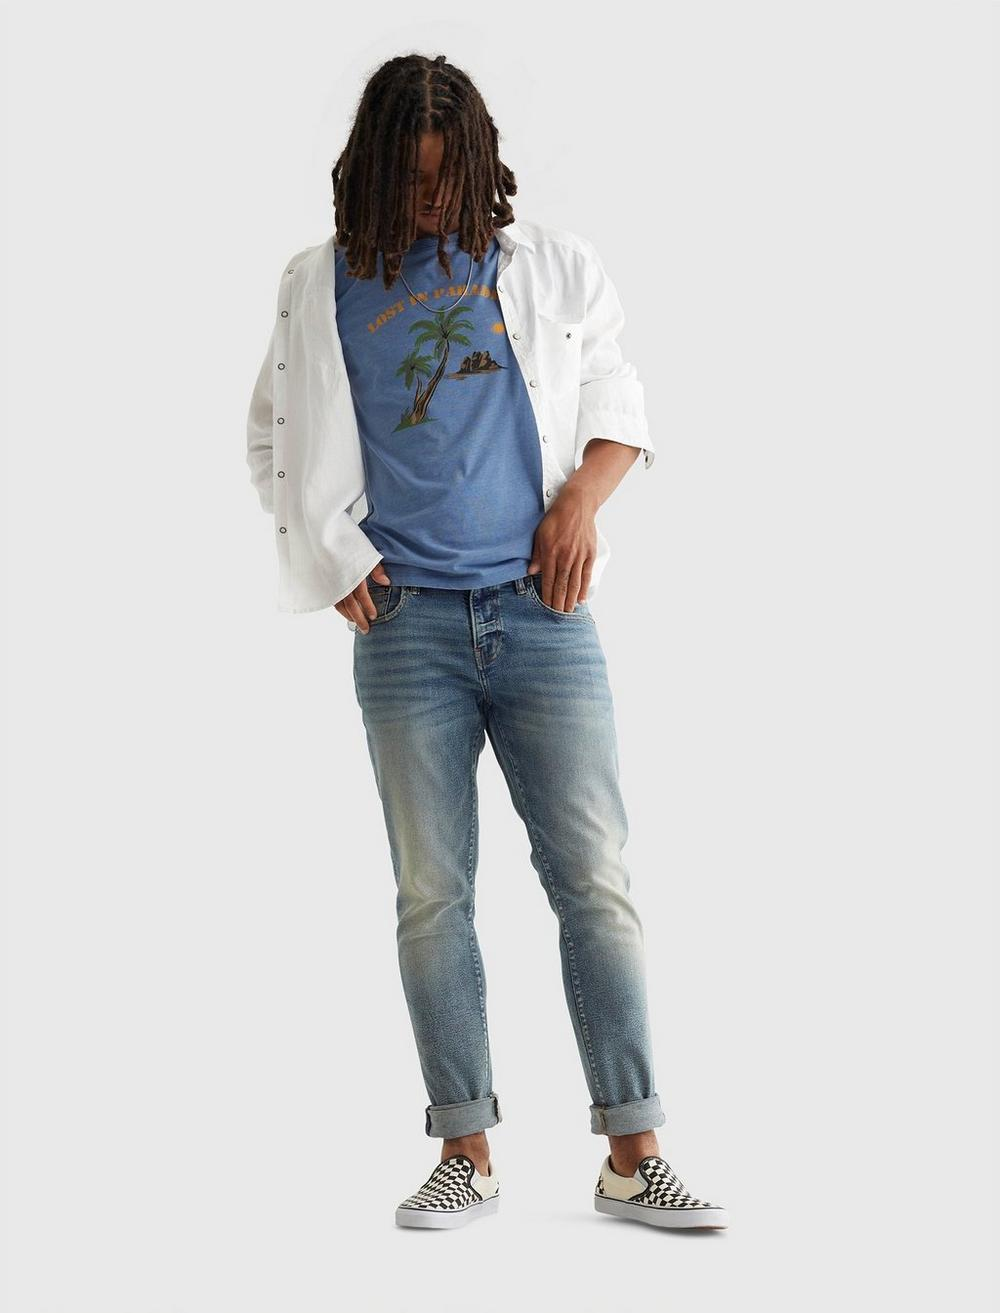 LOST IN PARADISE TEE, image 2